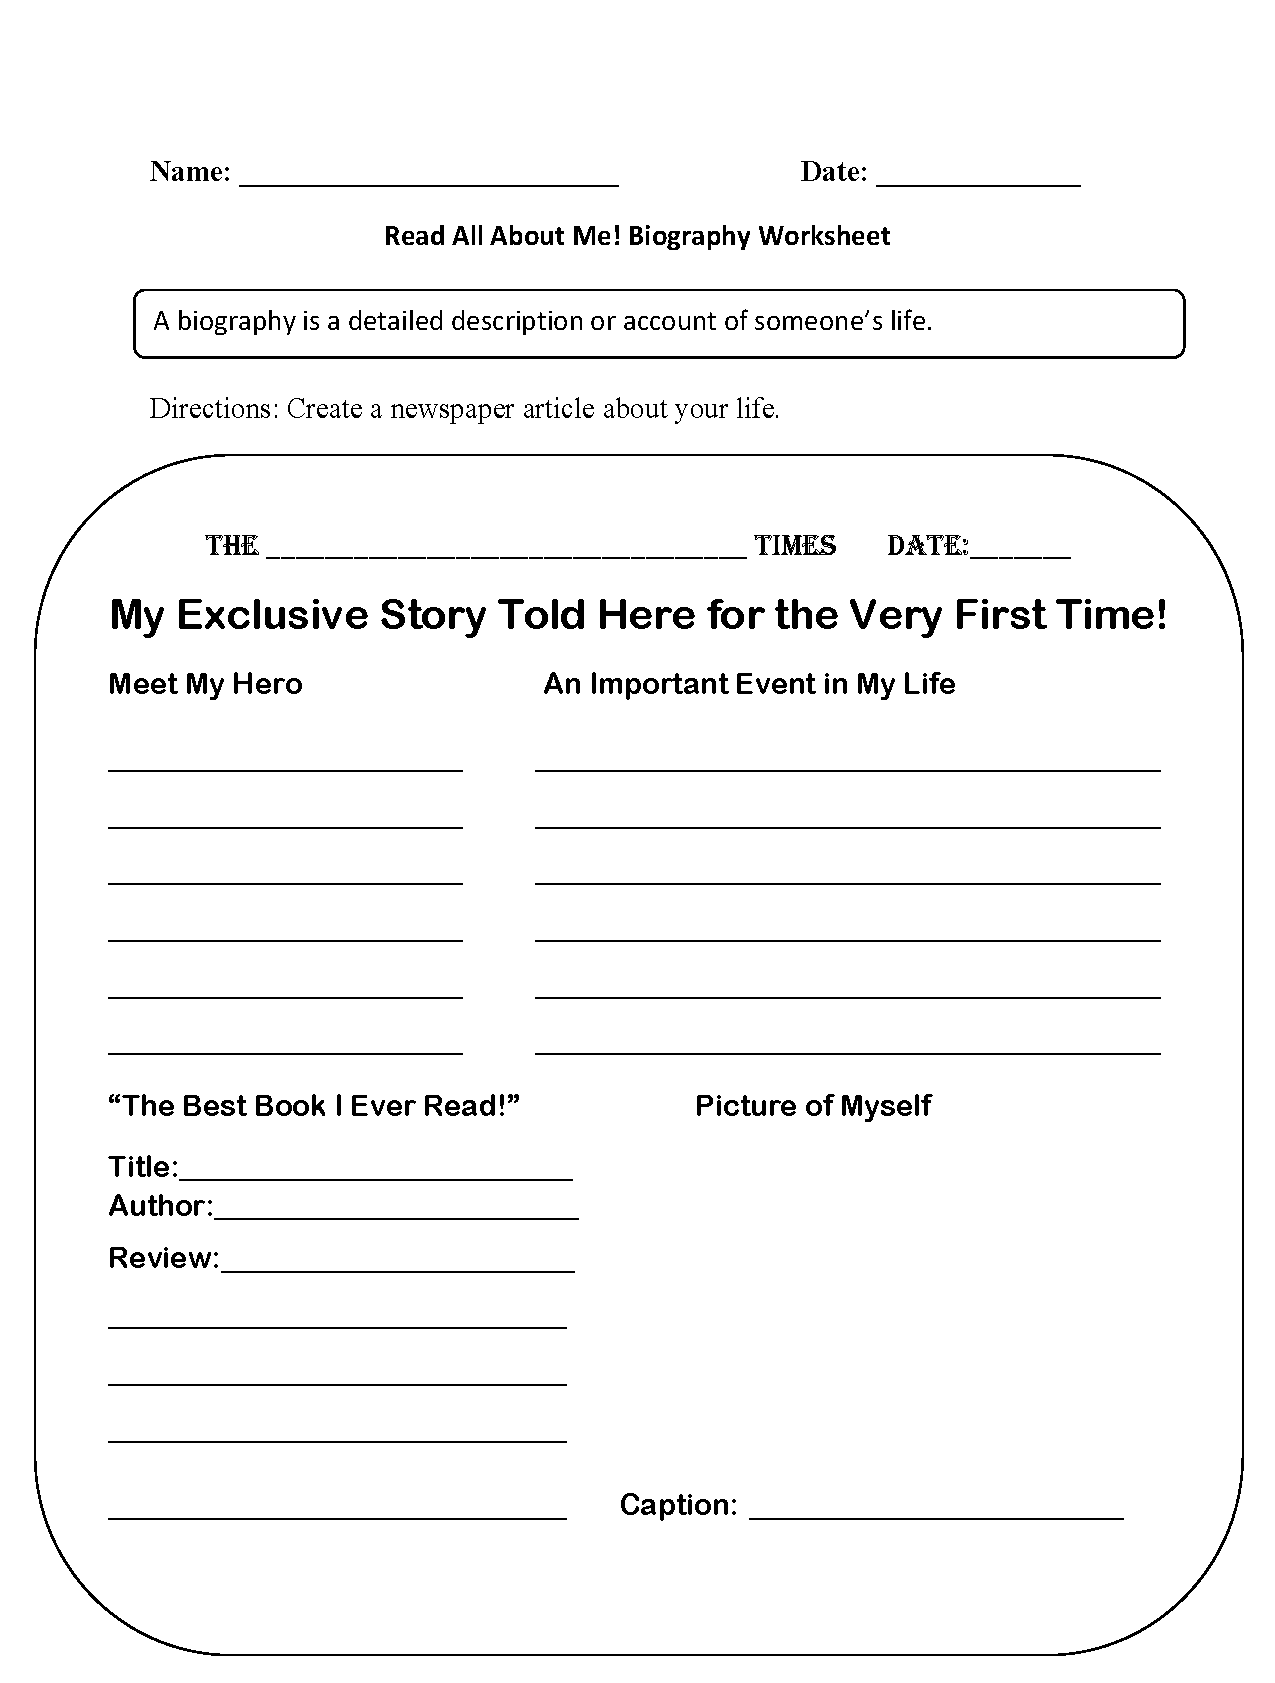 hight resolution of Read All About Me Back to School Worksheets   School worksheets